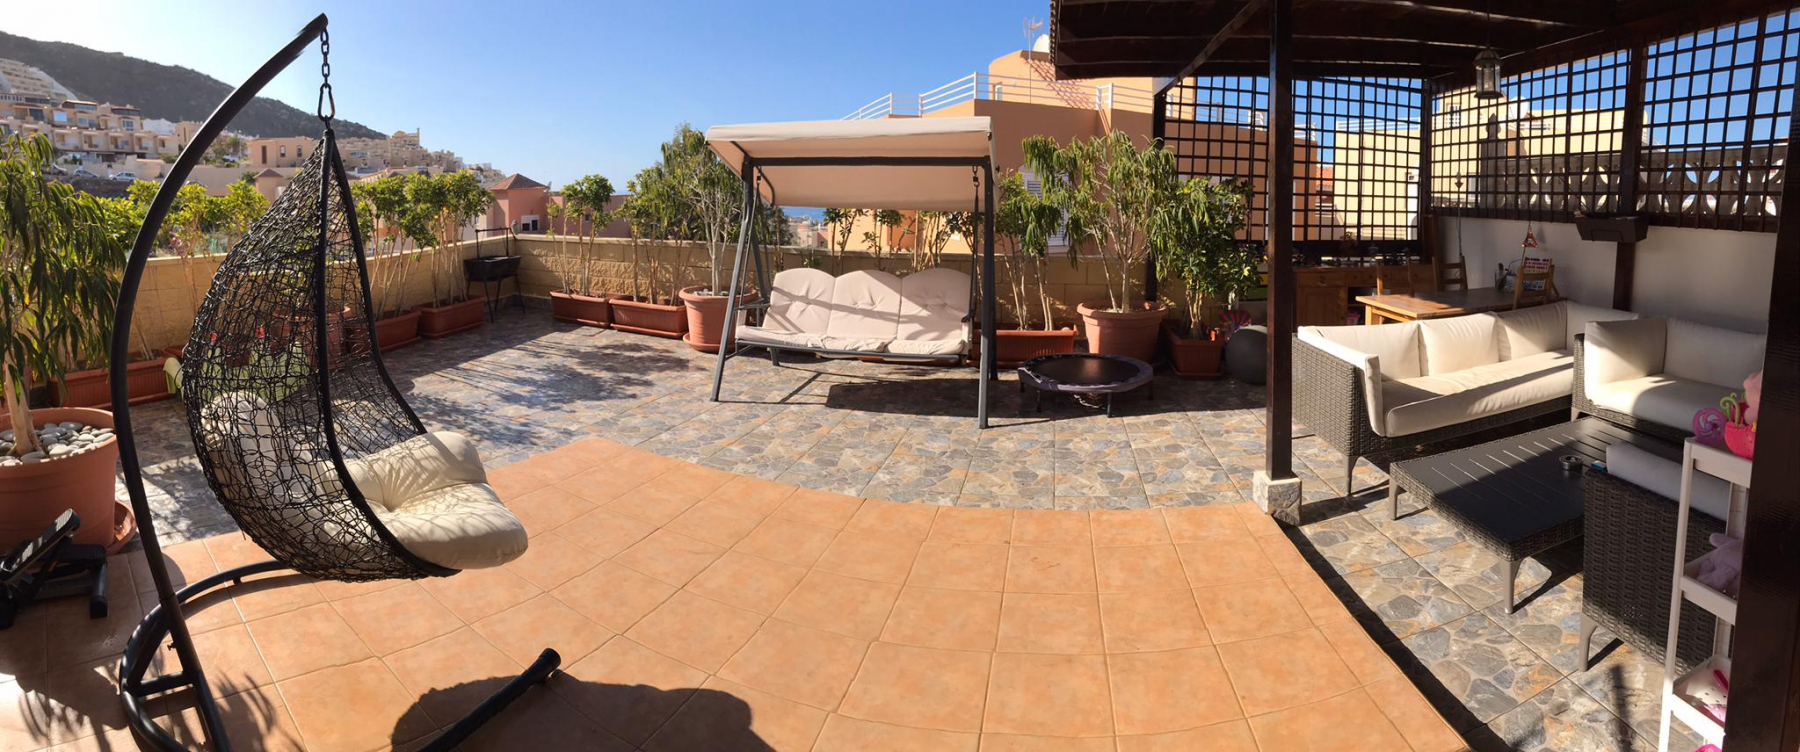 Properties for Sale in Tenerife, Canary Islands, Spain | SylkWayStar Real Estate. 4 bedrooms Townhouse - El Madroñal . Image-26199